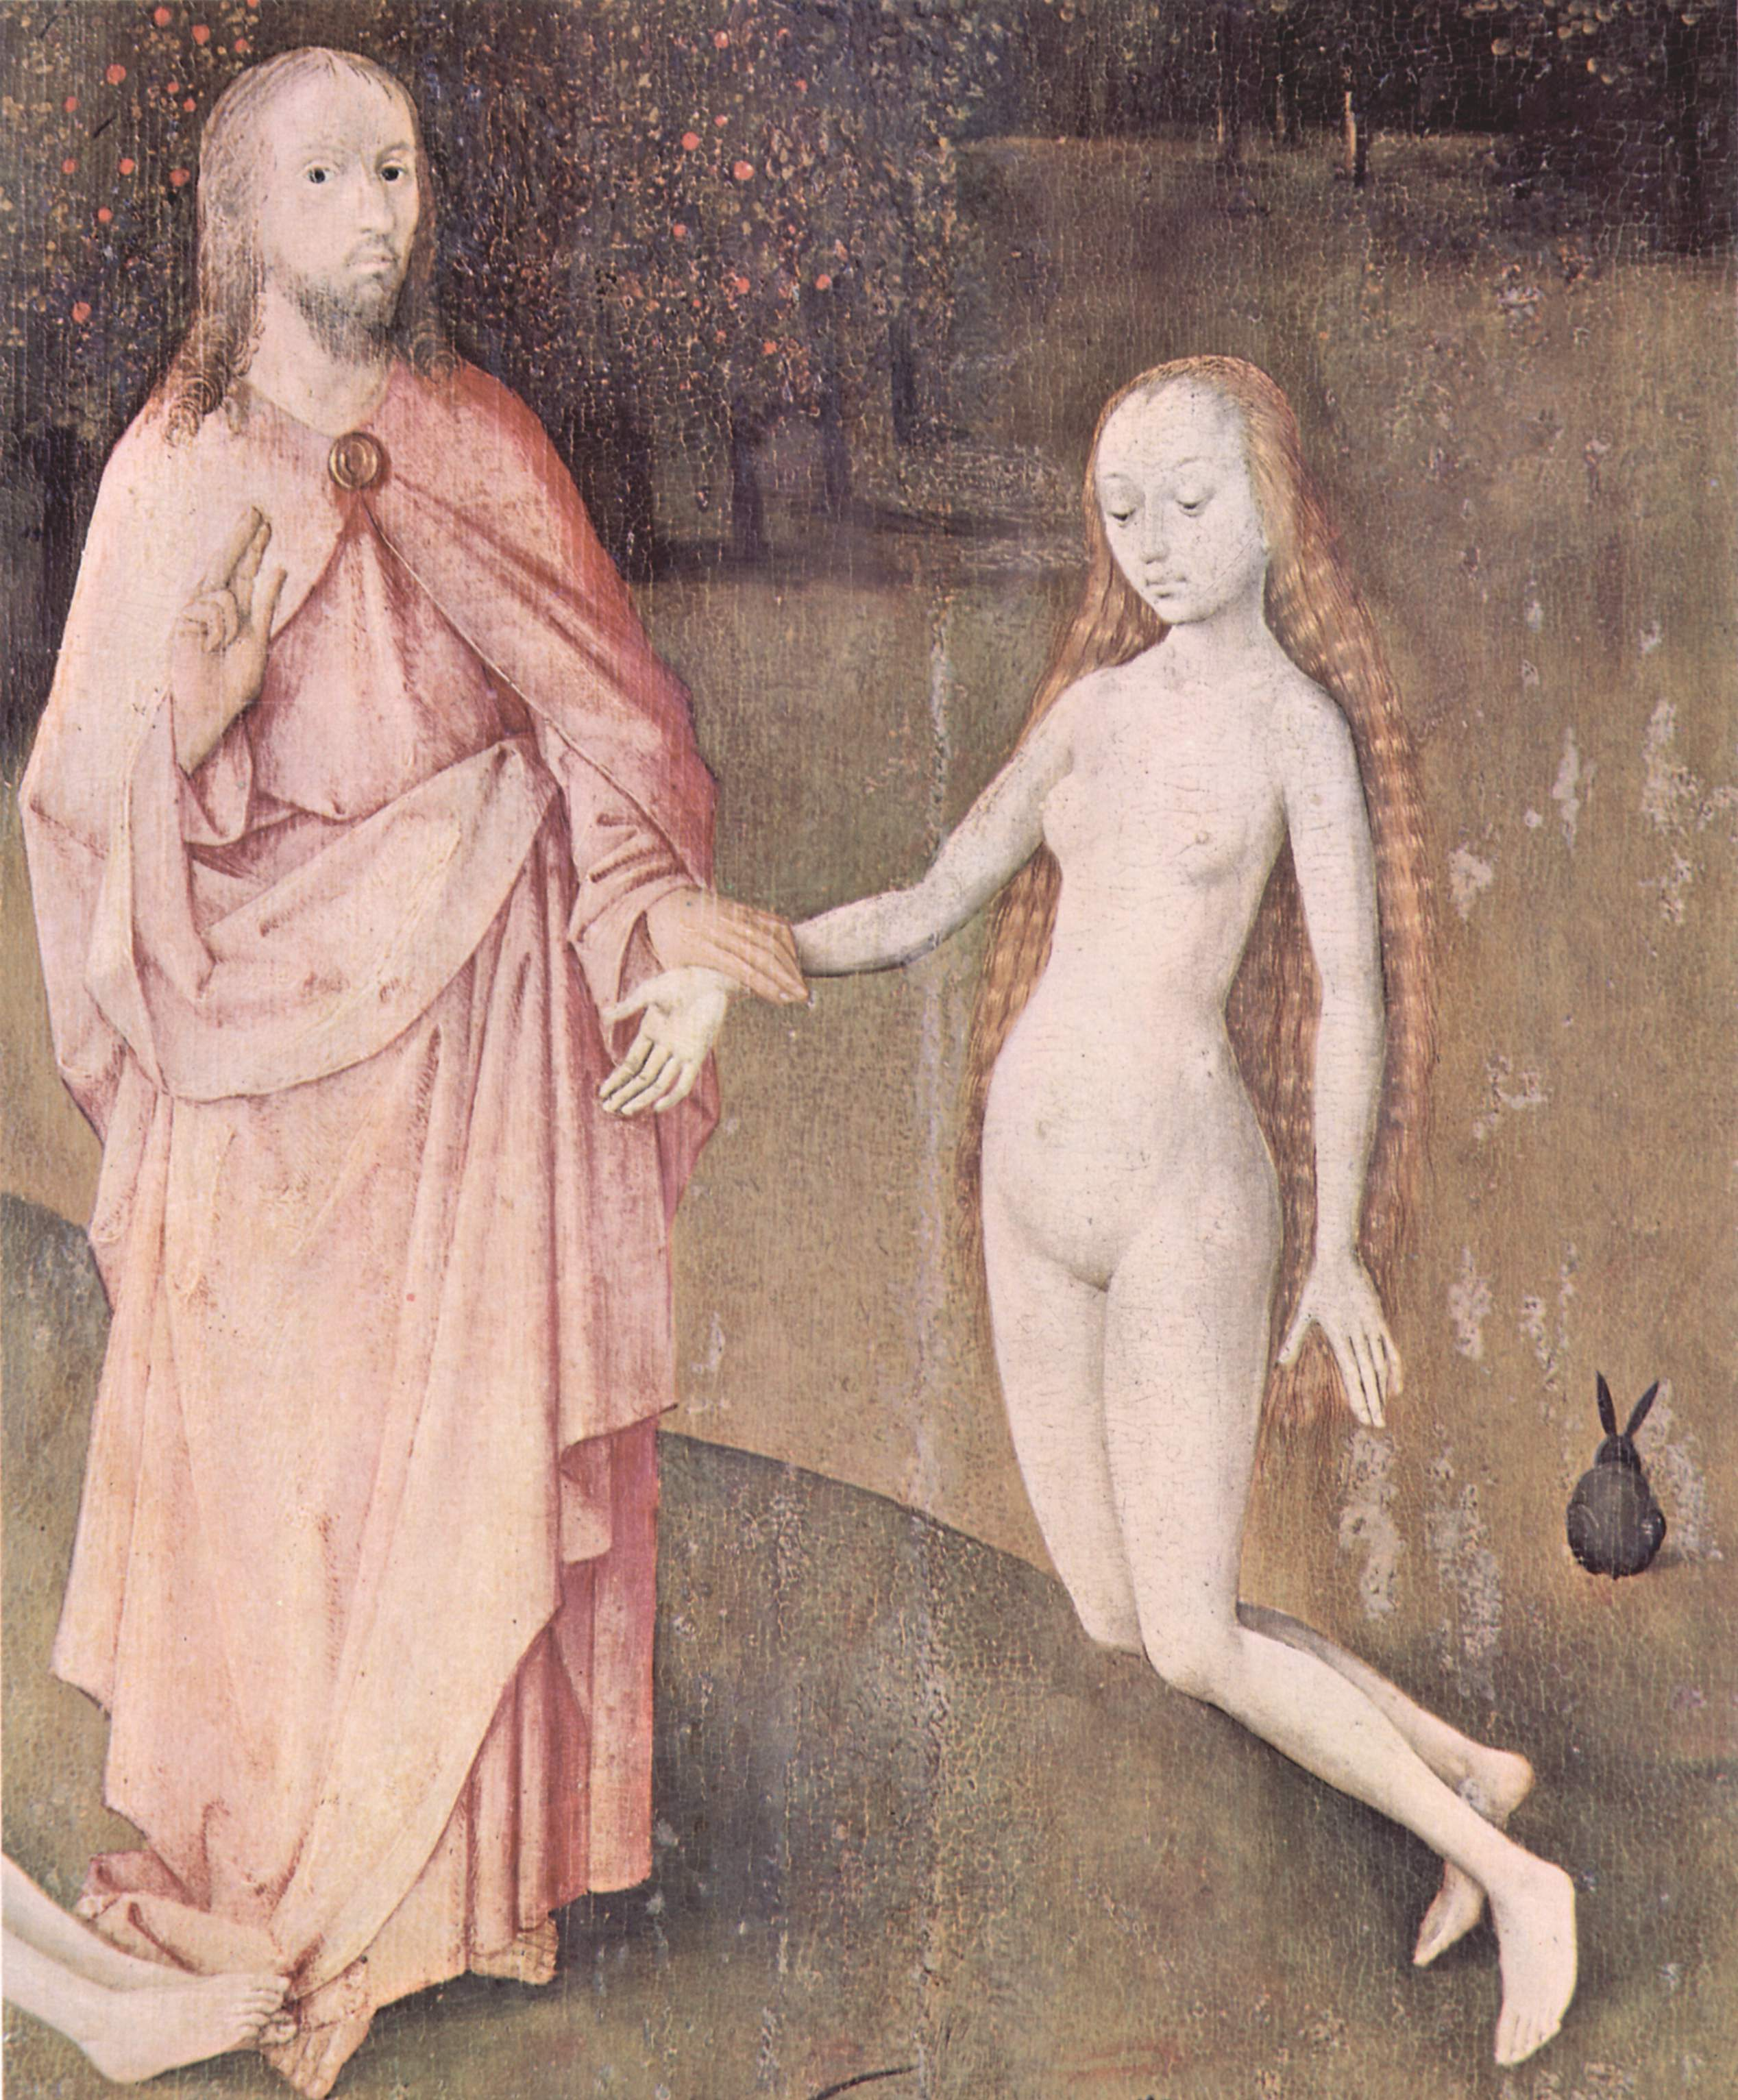 The Garden of Earthly Delights (detail) by Hieronymus Bosch 022.jpg